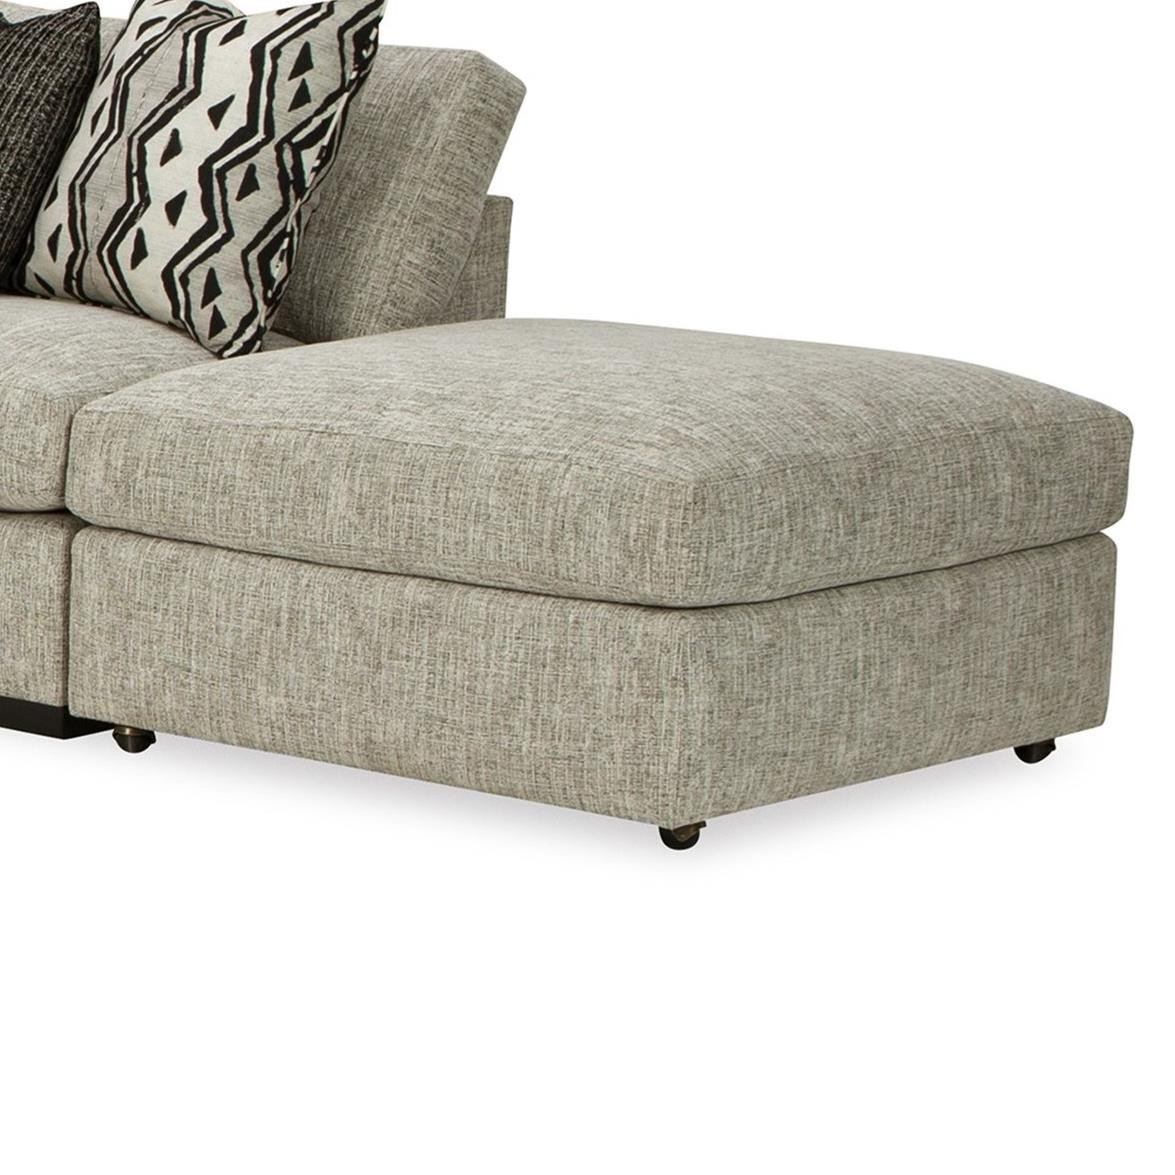 792750BD Cocktail Ottoman by Craftmaster at Prime Brothers Furniture